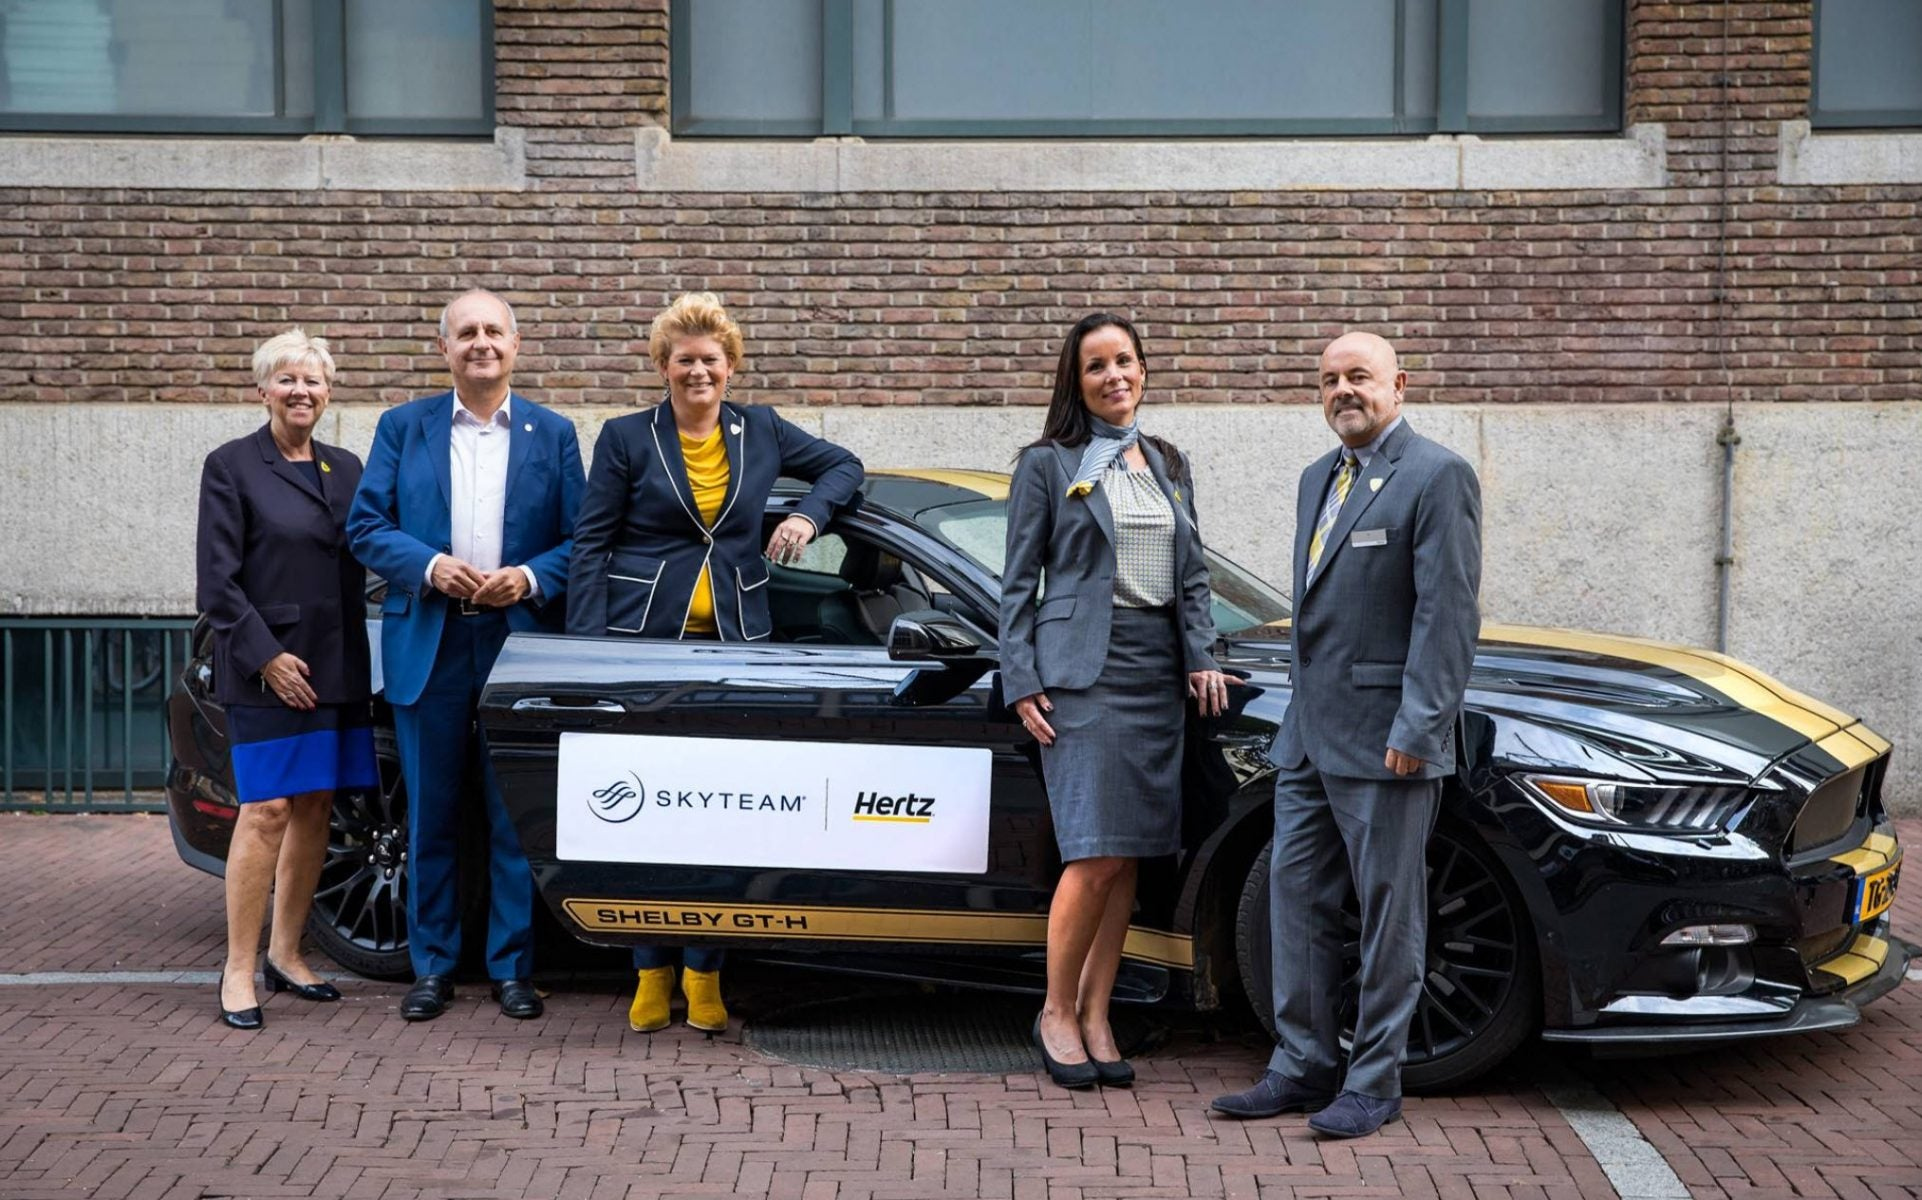 SkyTeam Alliance (Delta, KLM, Air France, Etc.) Adds Its First Partner Without Wings – Hertz!